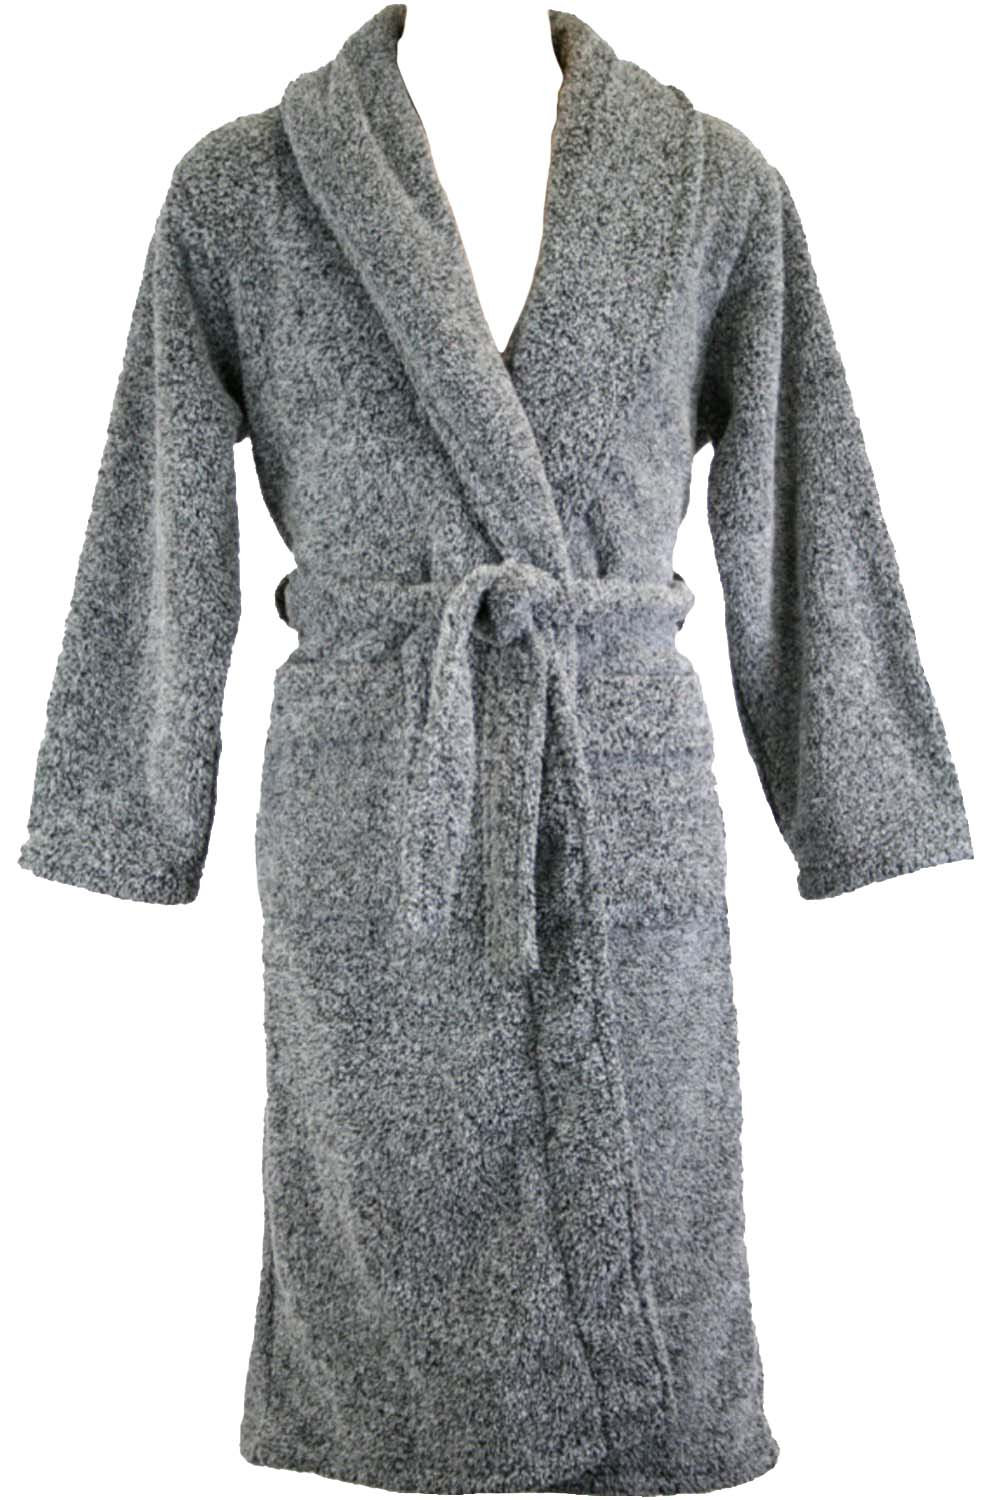 Get comfy with our cozy robes. Choose from satin, cotton and lace robes available in short and long styles. Shop now at Victoria's Secret.